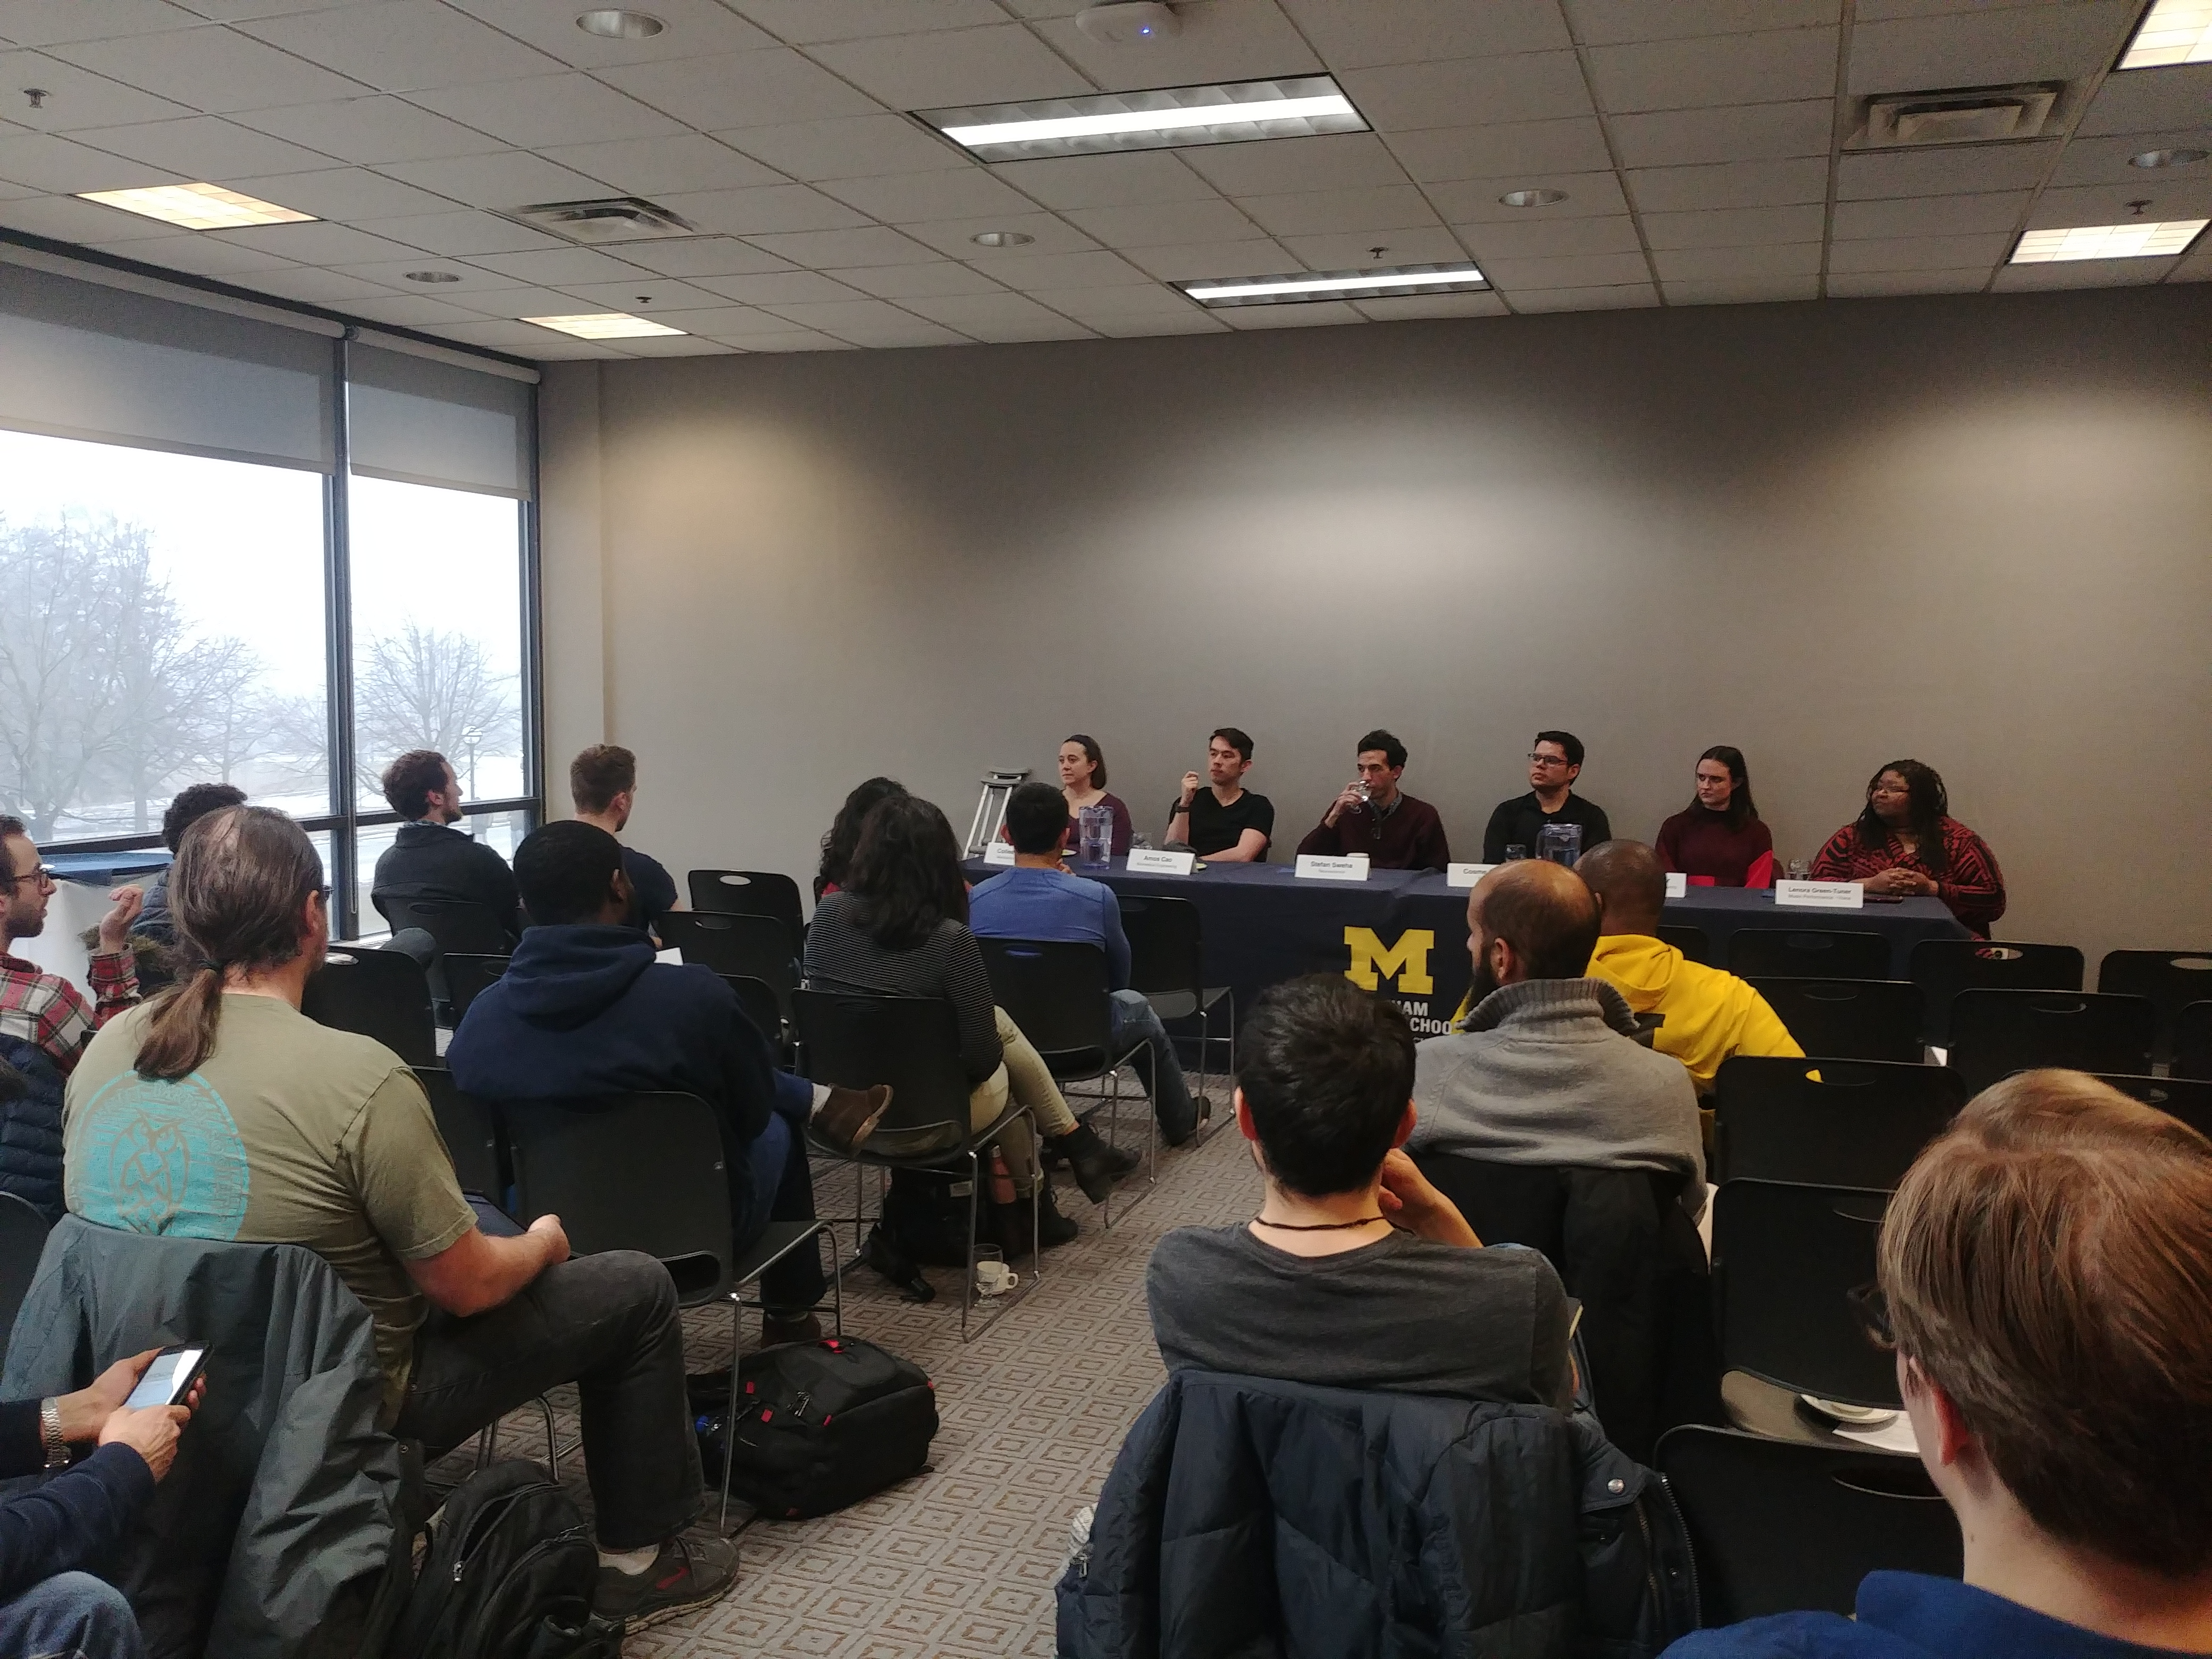 a classroom setting with a panel of speakers and students